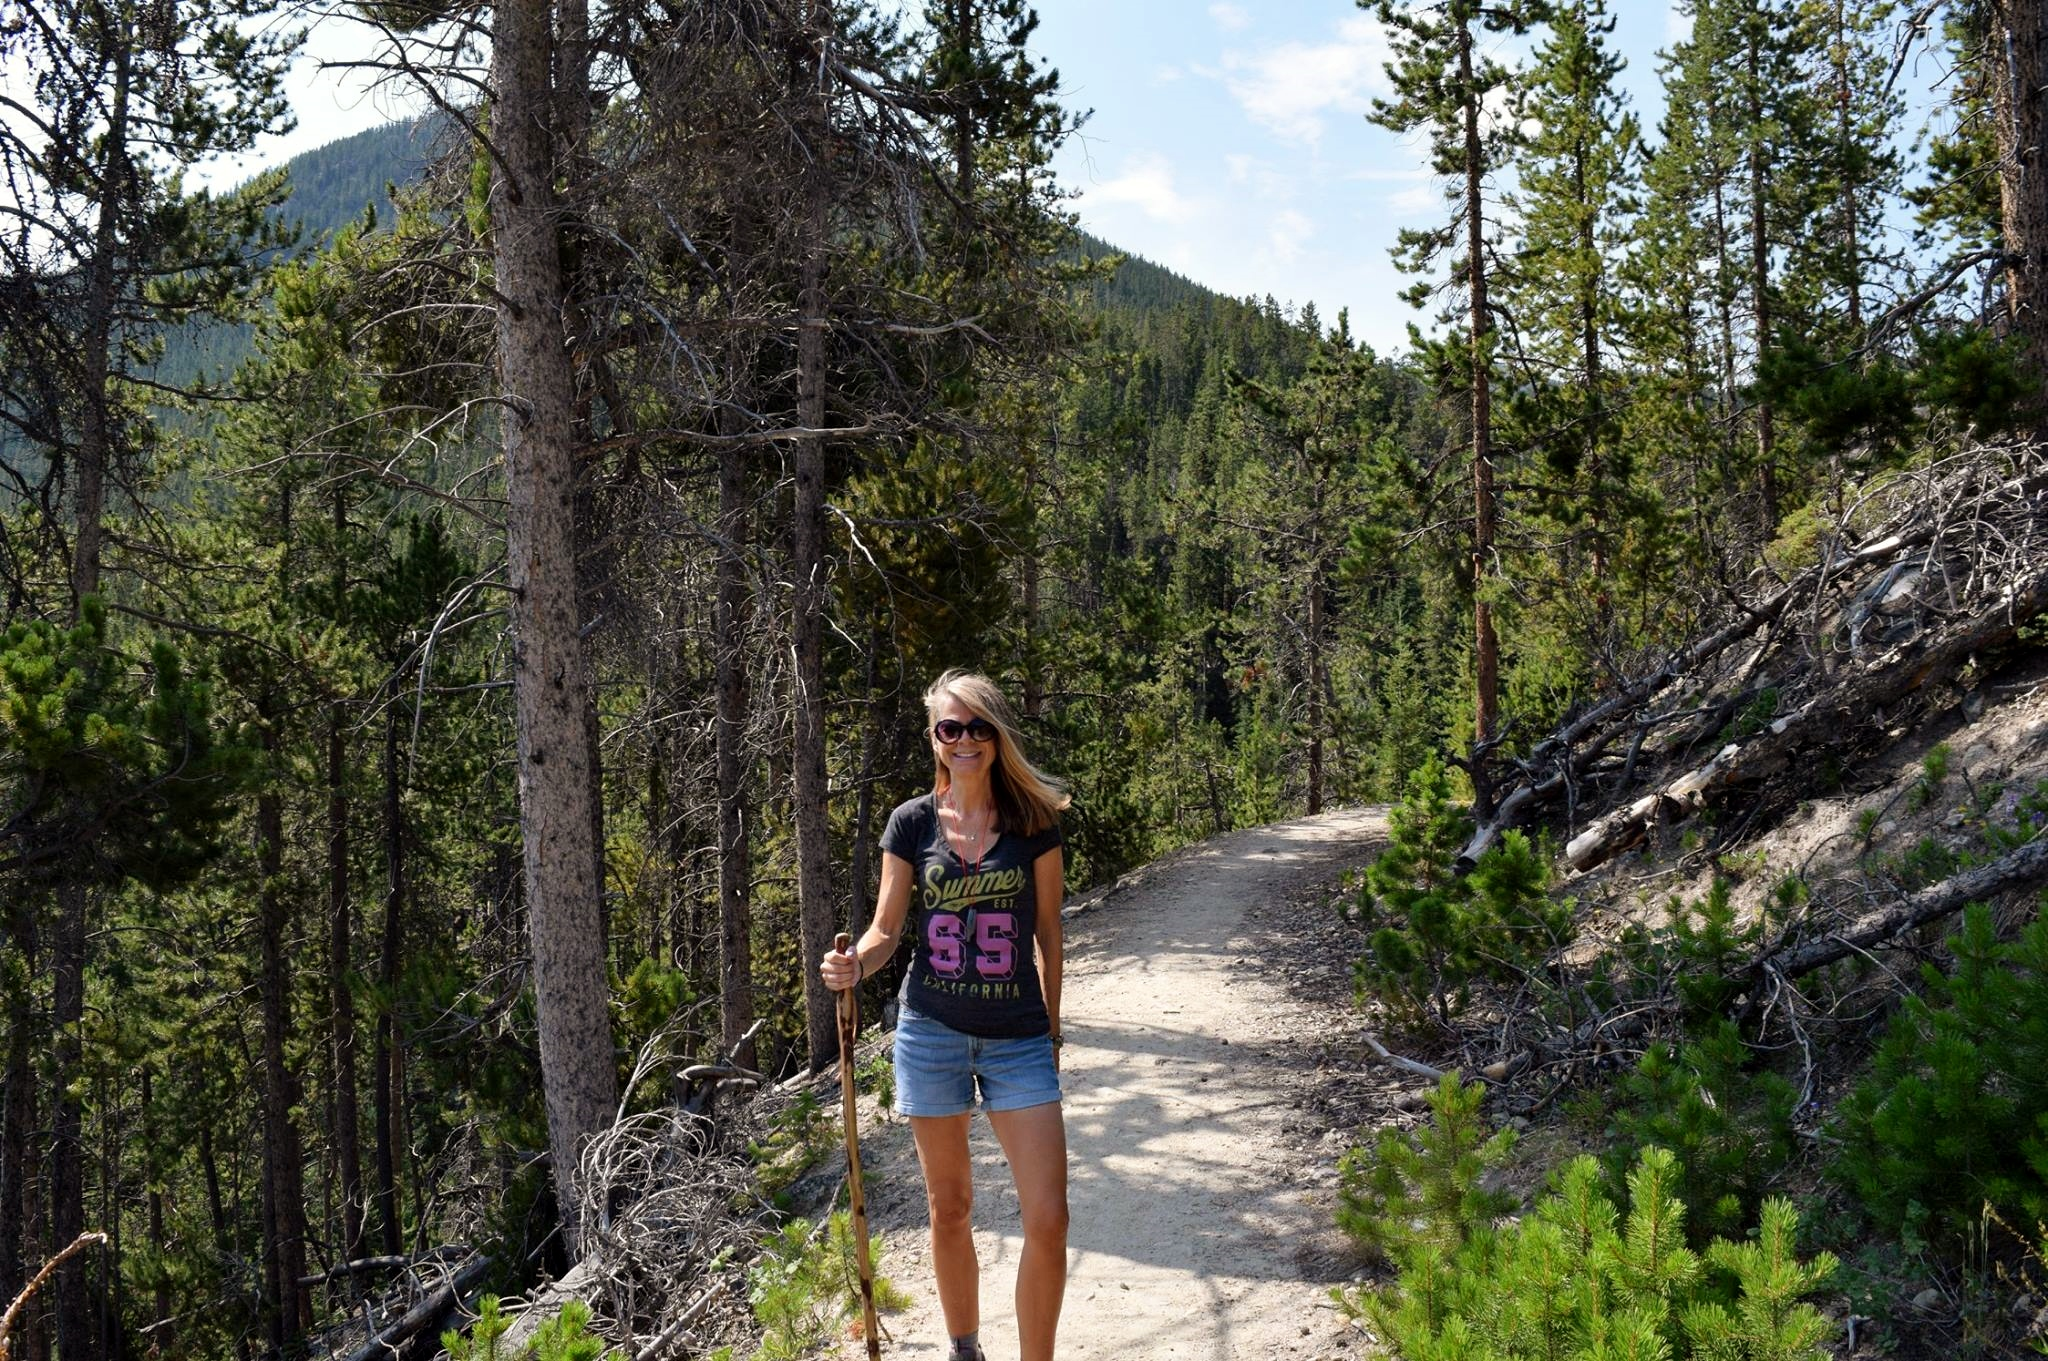 Vicky on a hike in the Beartooth Mountain Range, Montana, 2018